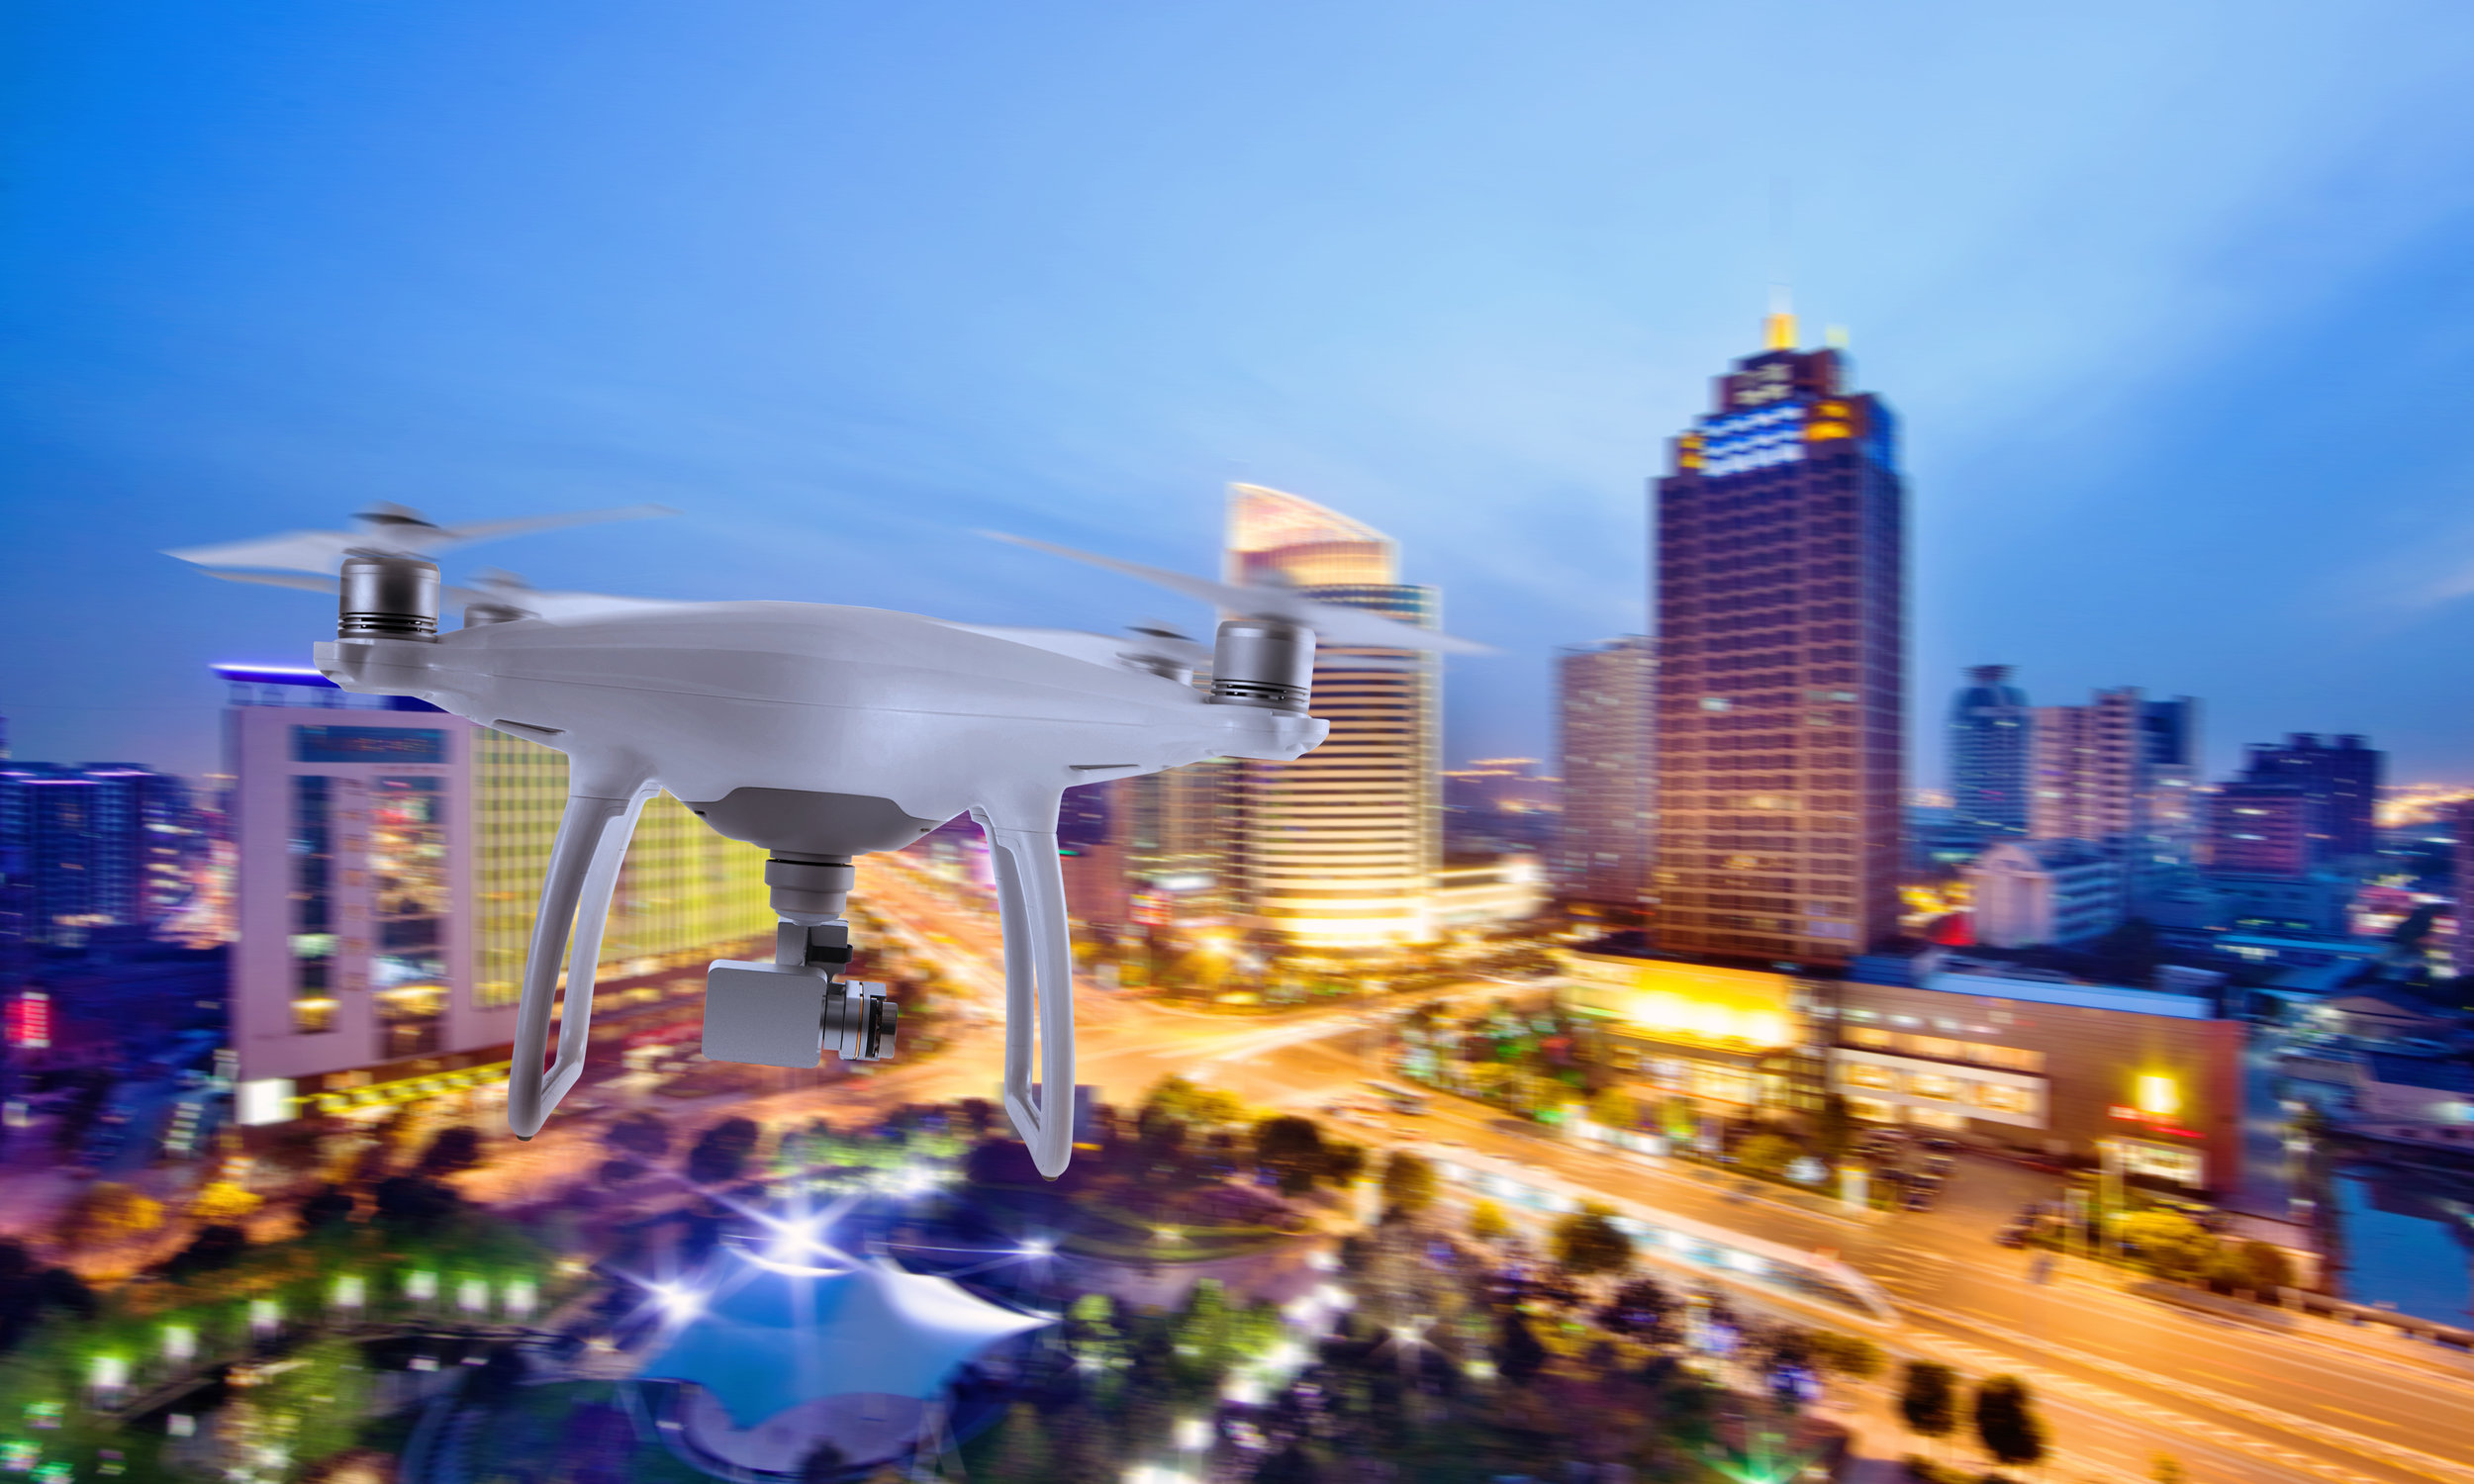 Drones nas Smart Cities - Cenário, Desafios Regulatórios e Perspectivas do Uso Urbano